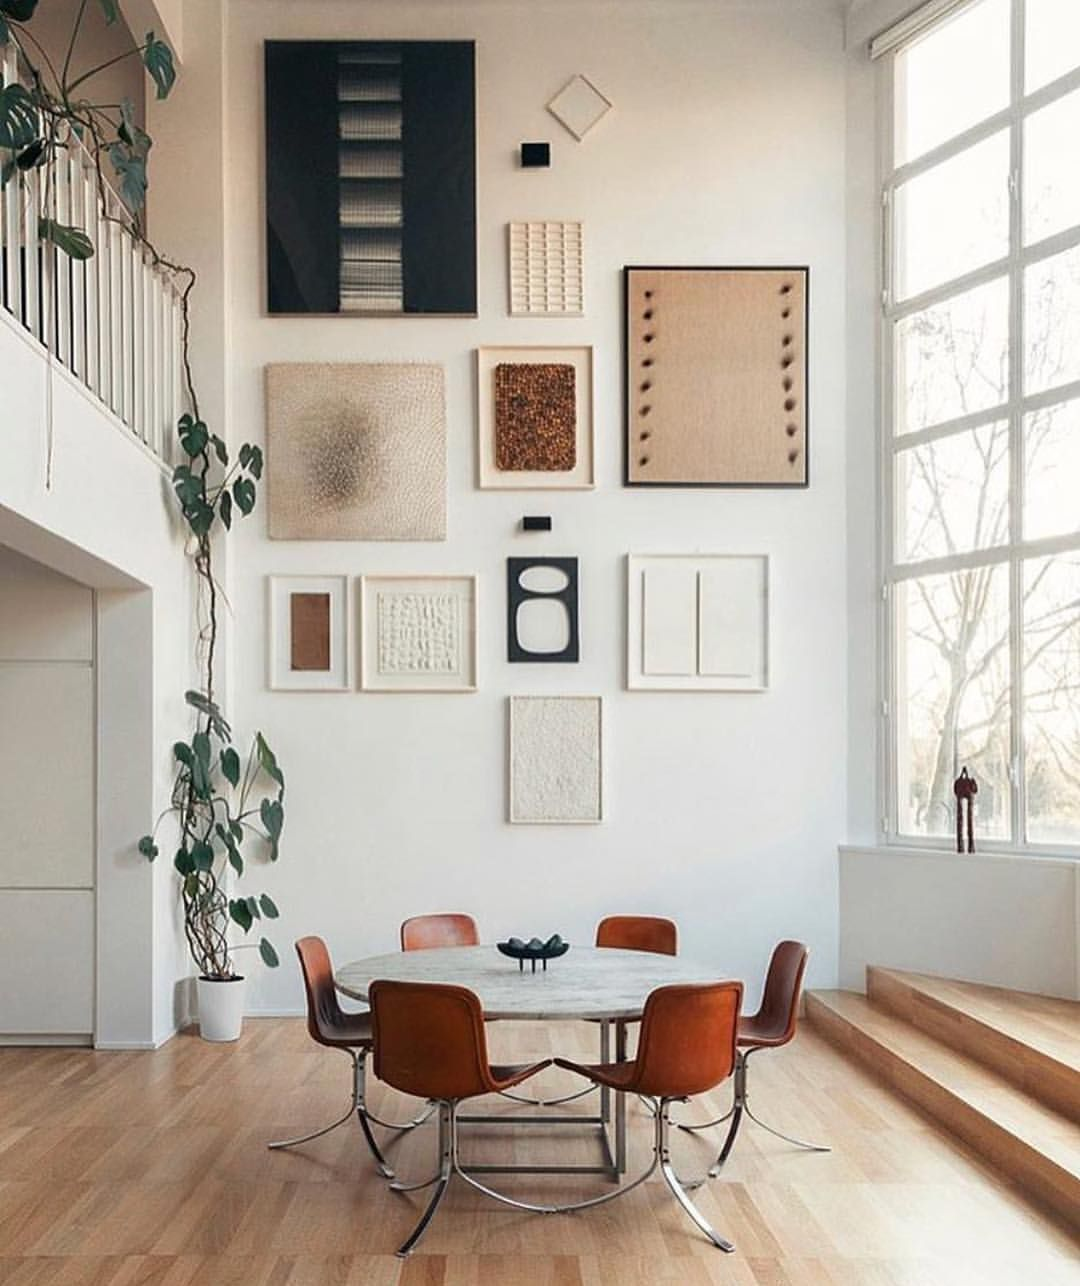 Gallery wall art over dining table with extra tall ceilings